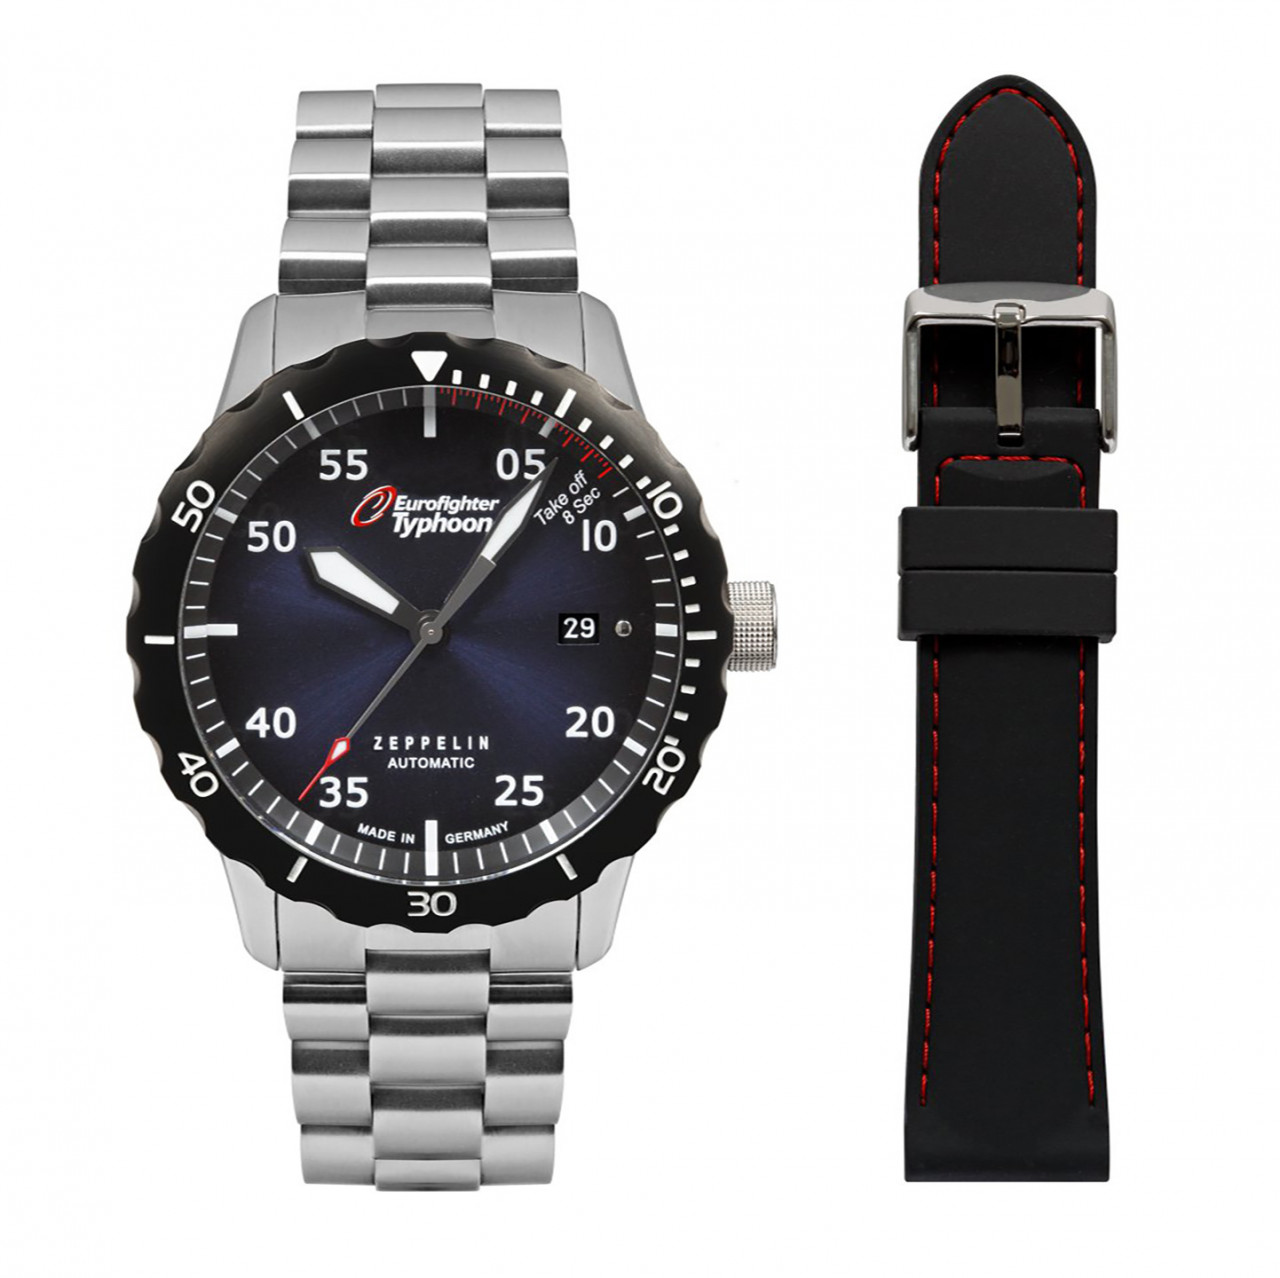 HAU, Zeppelin Automatic Ed. Eurofighter SET MB/SI Kal. 9015 24 Jewels, Steelcase Diver wr 20atm